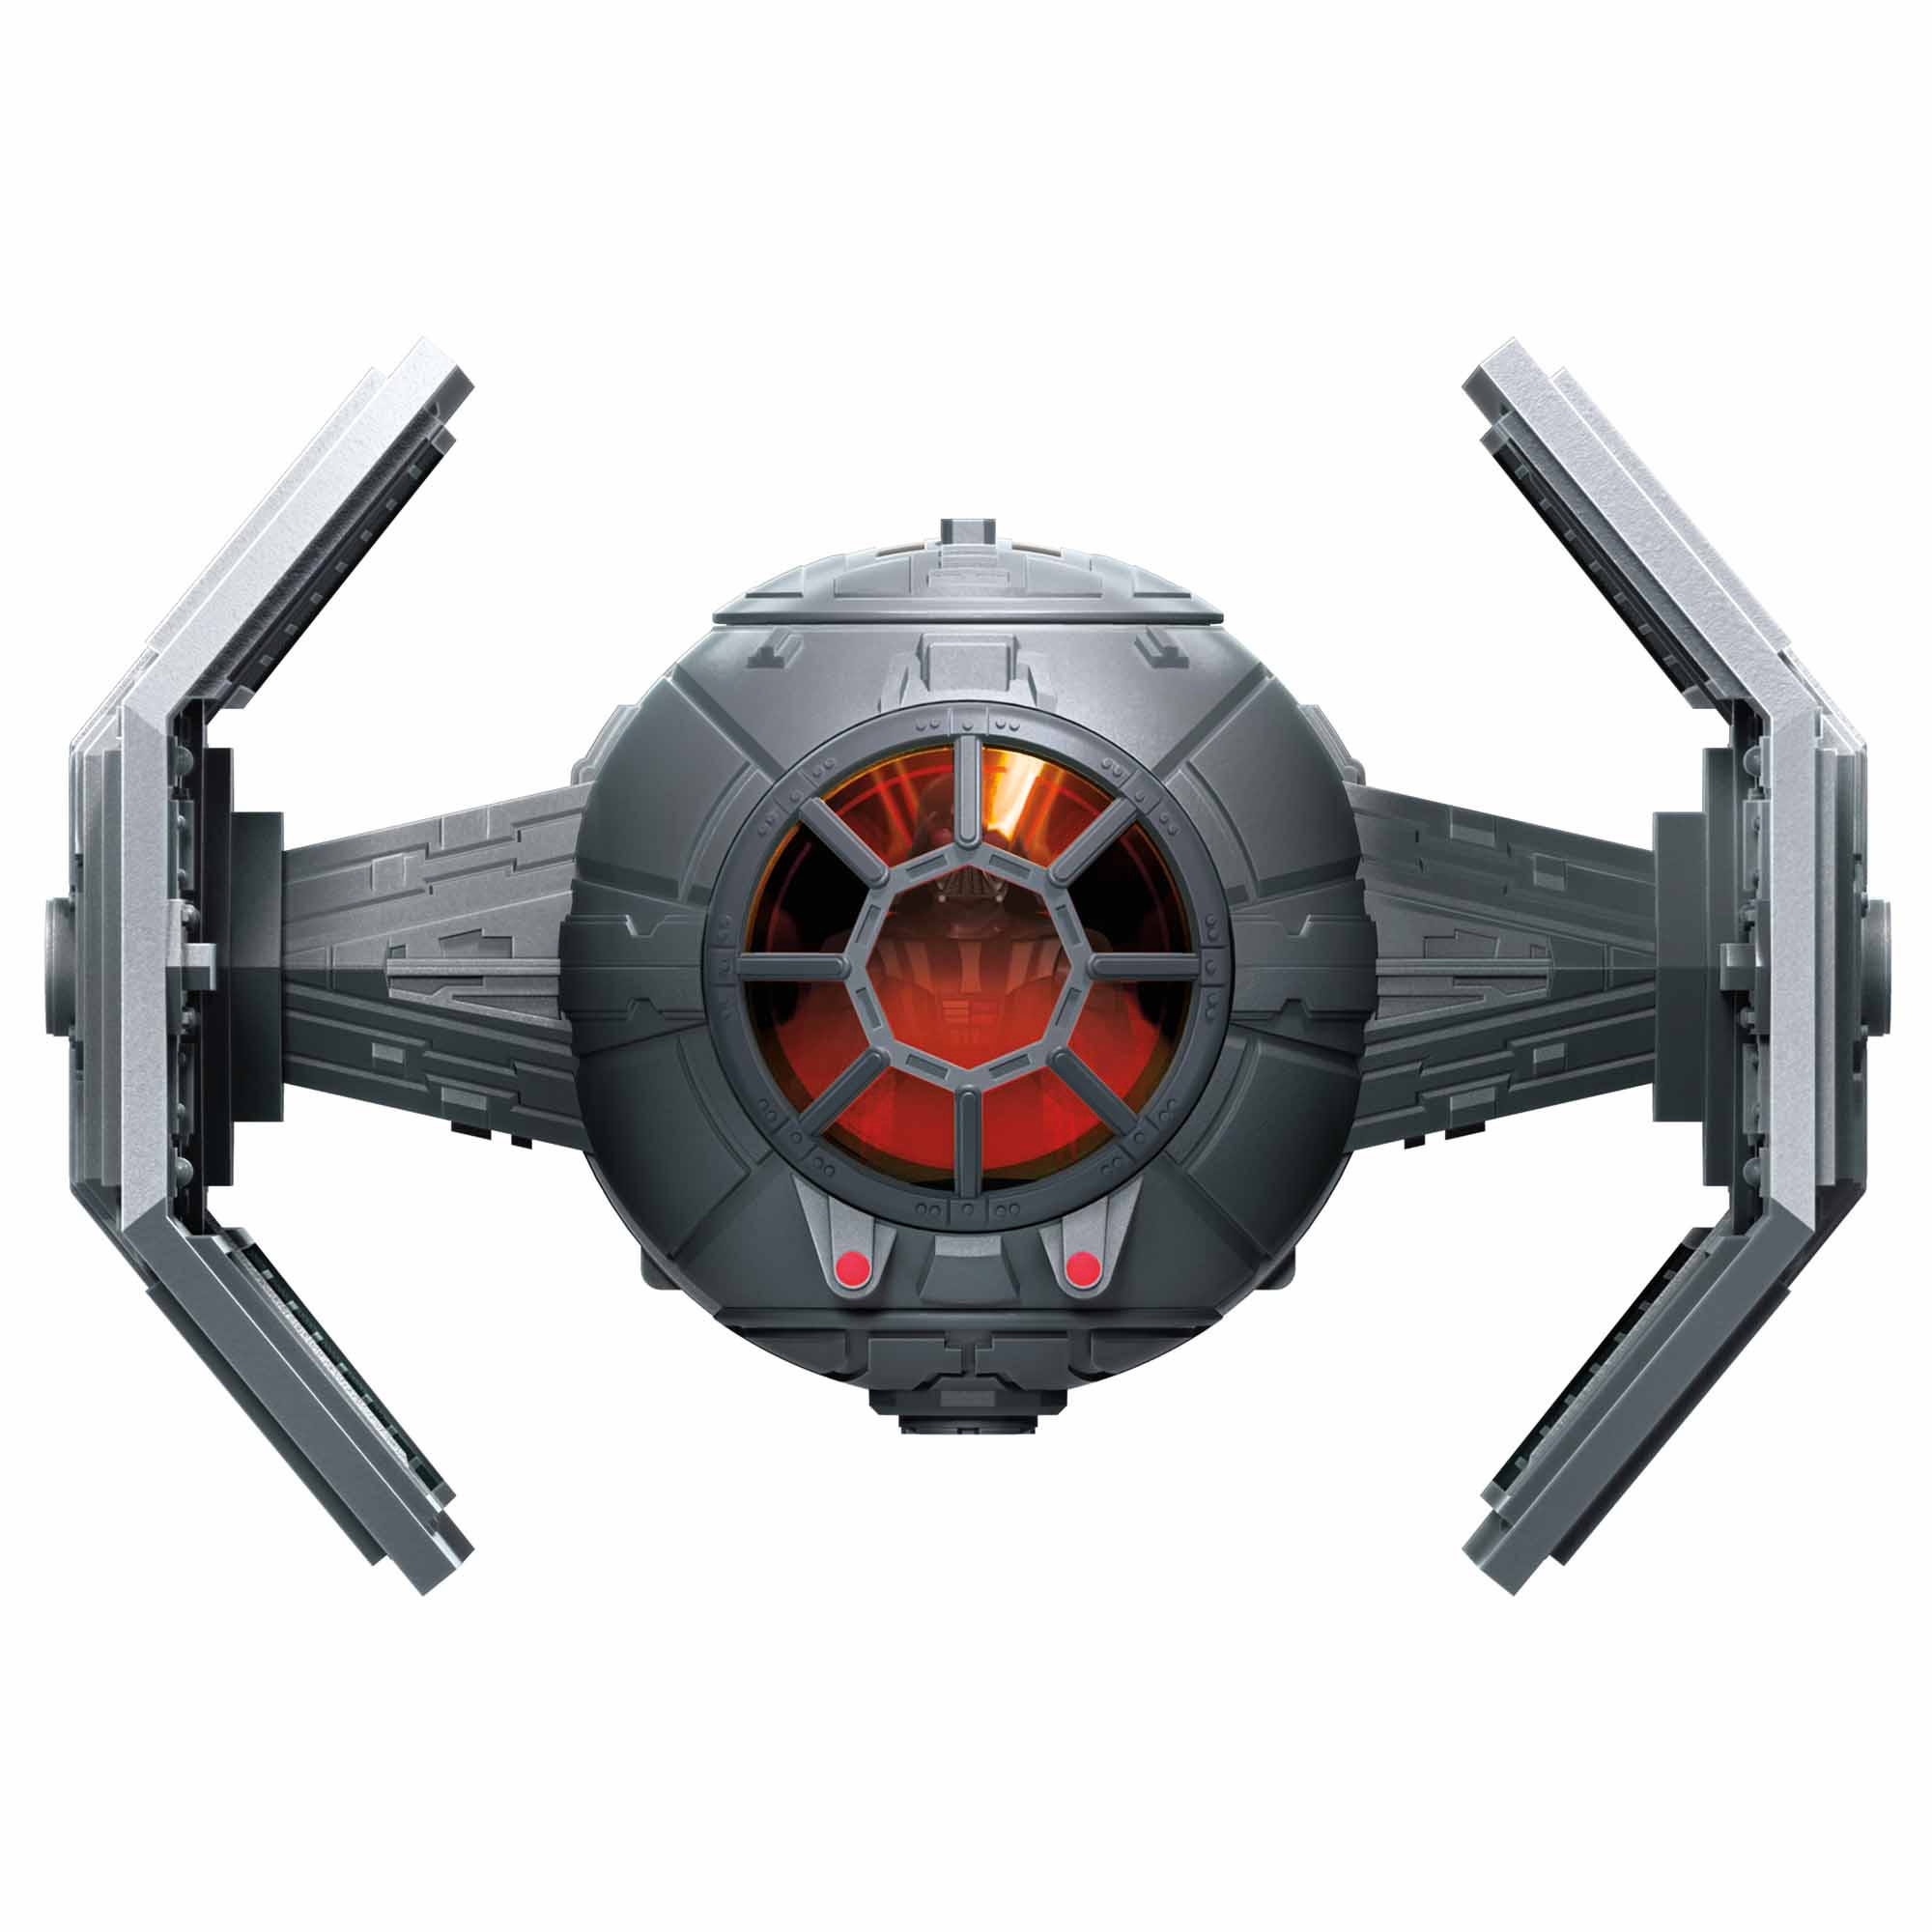 Star Wars Mission Fleet Stellar Class Darth Vader TIE Advanced 2.5-Inch-Scale Figure and Vehicle, for Kids Ages 4 and Up